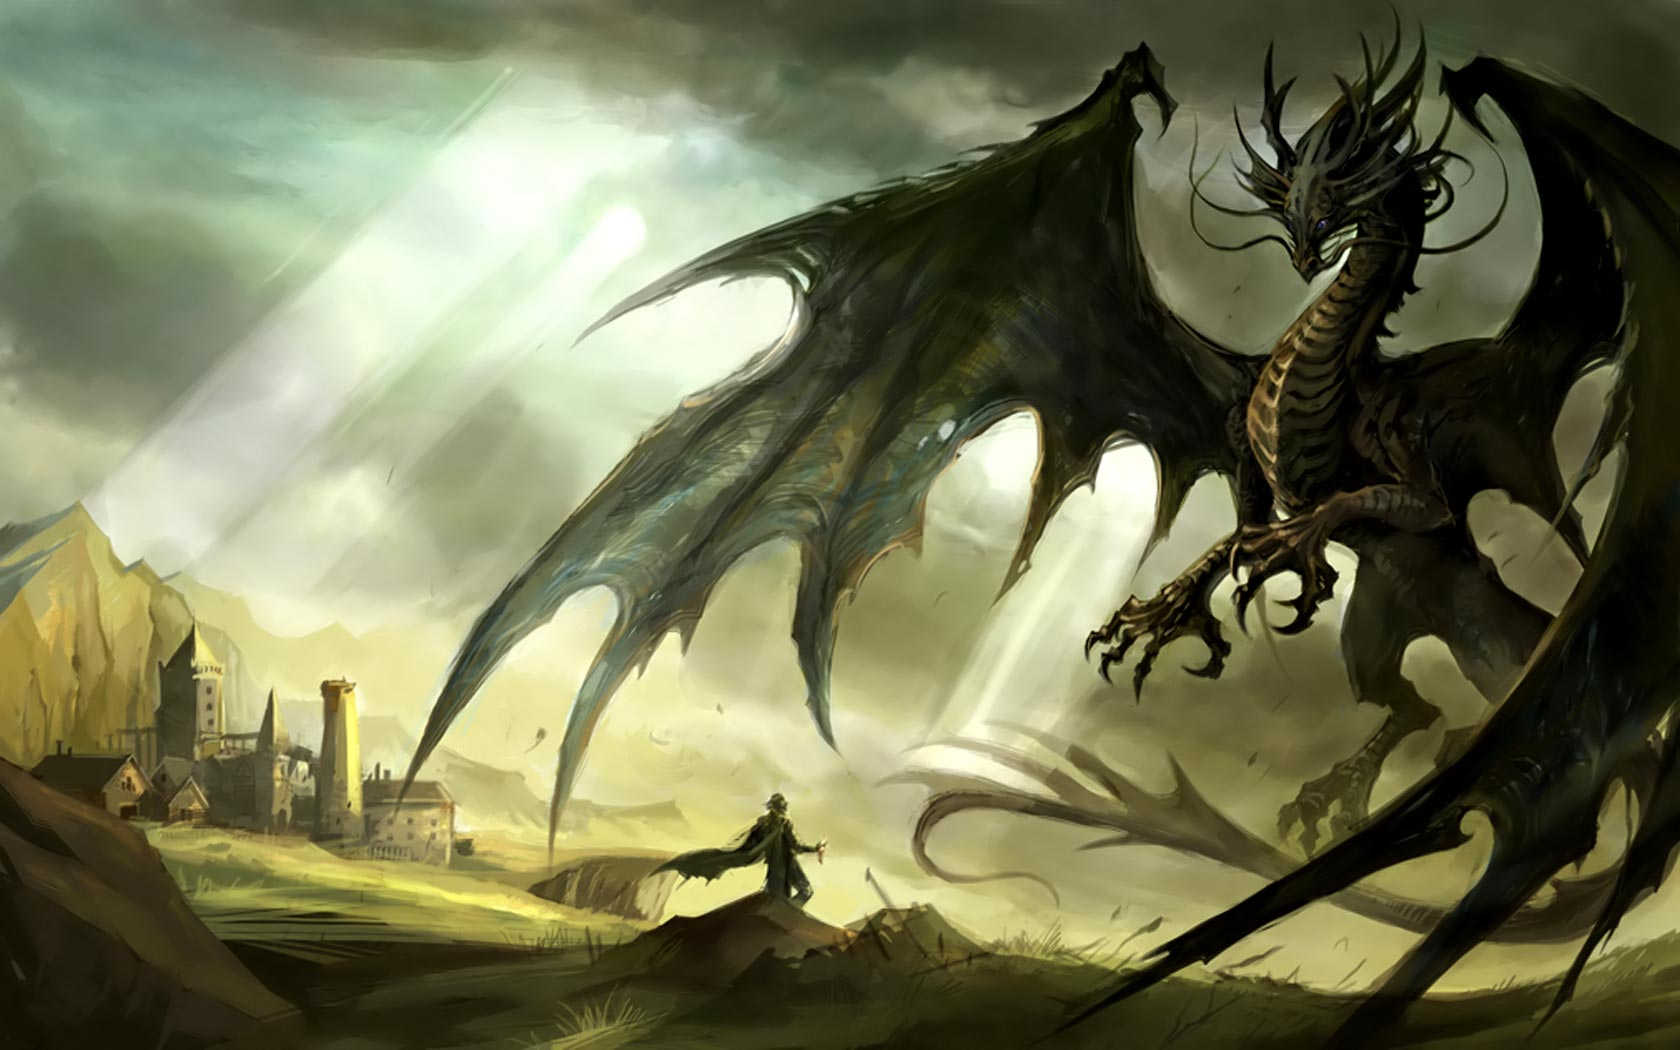 Dragon and Knight backgrounds Wallpaper and make this wallpaper for 1680x1050